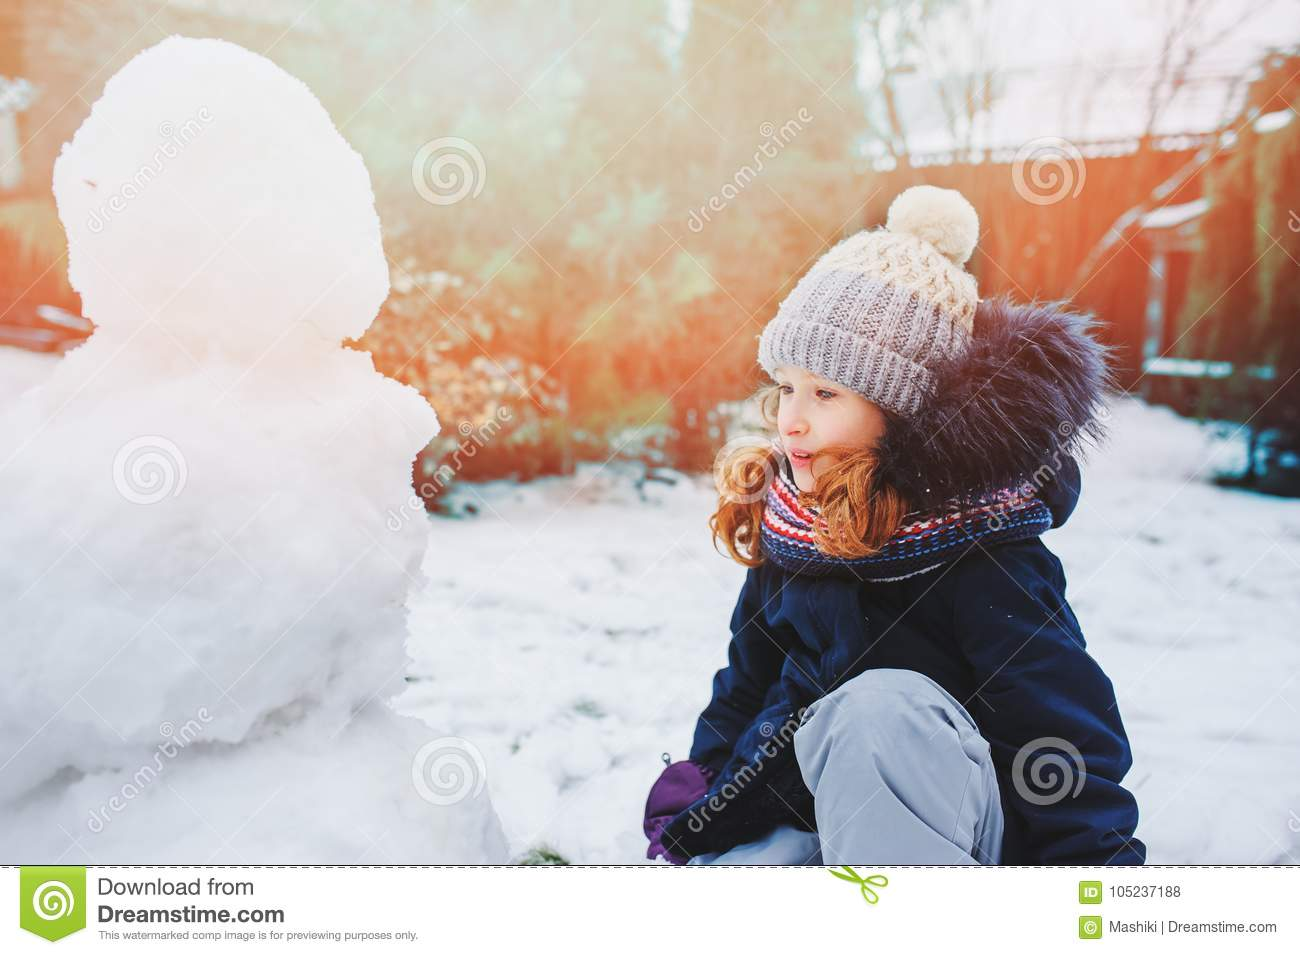 Happy Kid Girl Making Snow Man On Christmas Vacations Backyard Winter Outdoor Activities For Kids